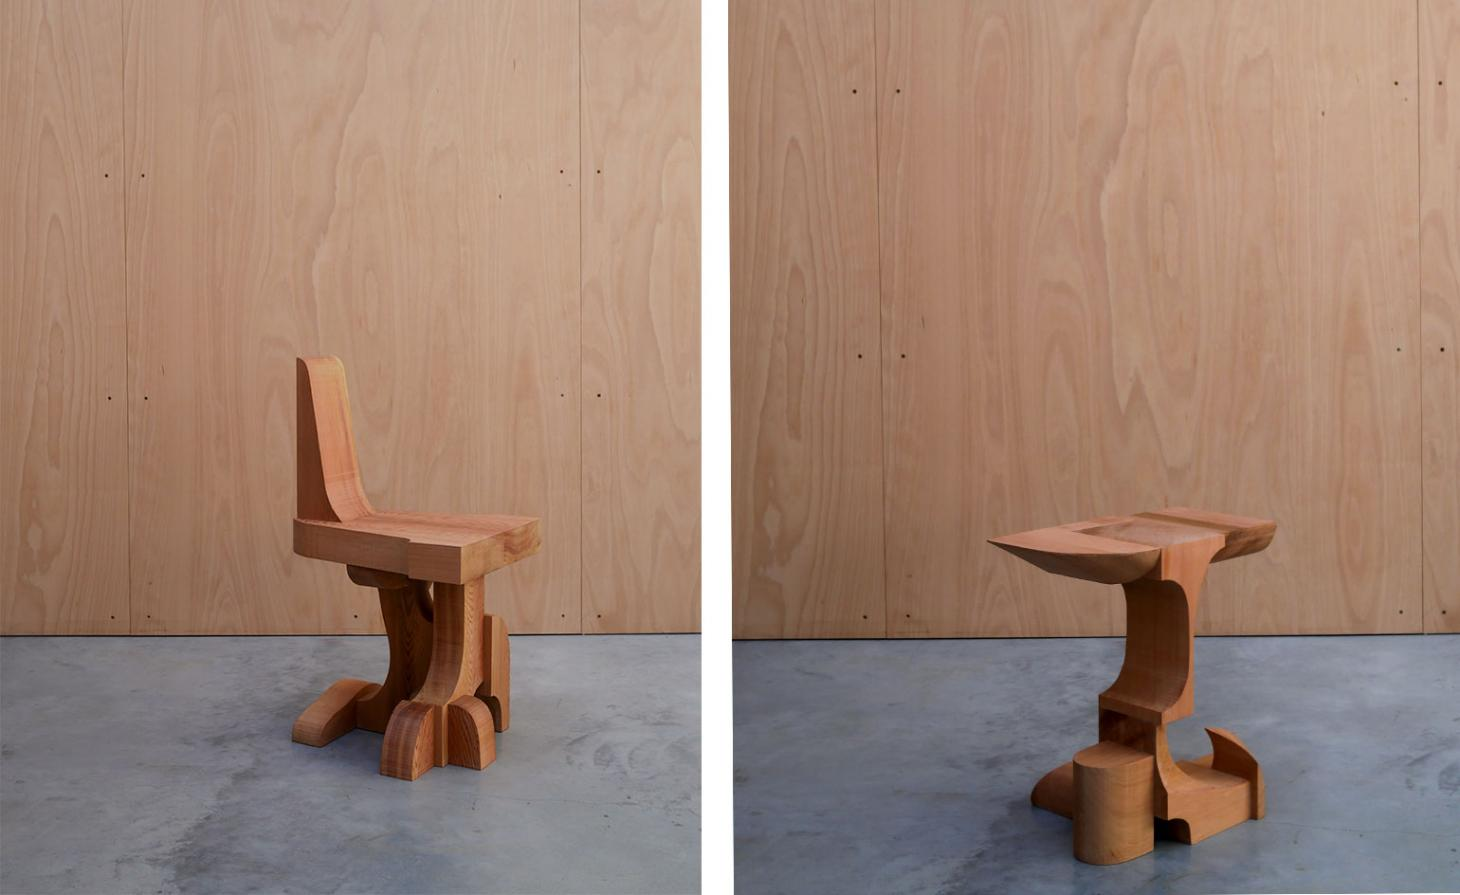 A pair of chairs made of red cedar wood. Each chair is composed like a puzzle, using the elements cut from a single block of wood.